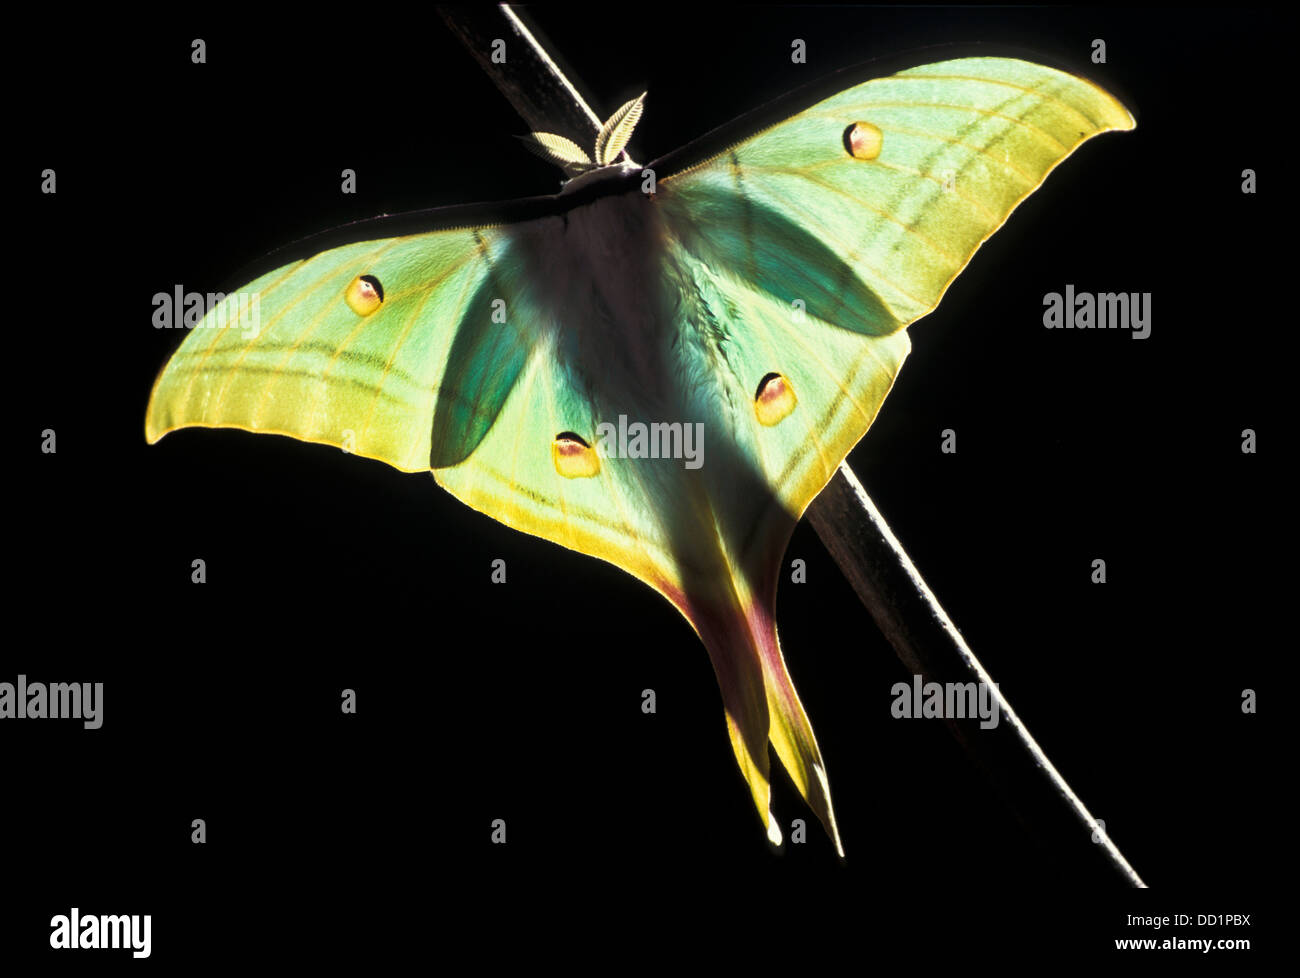 Indian Moon Moth, Actias selene, Asia - Stock Image